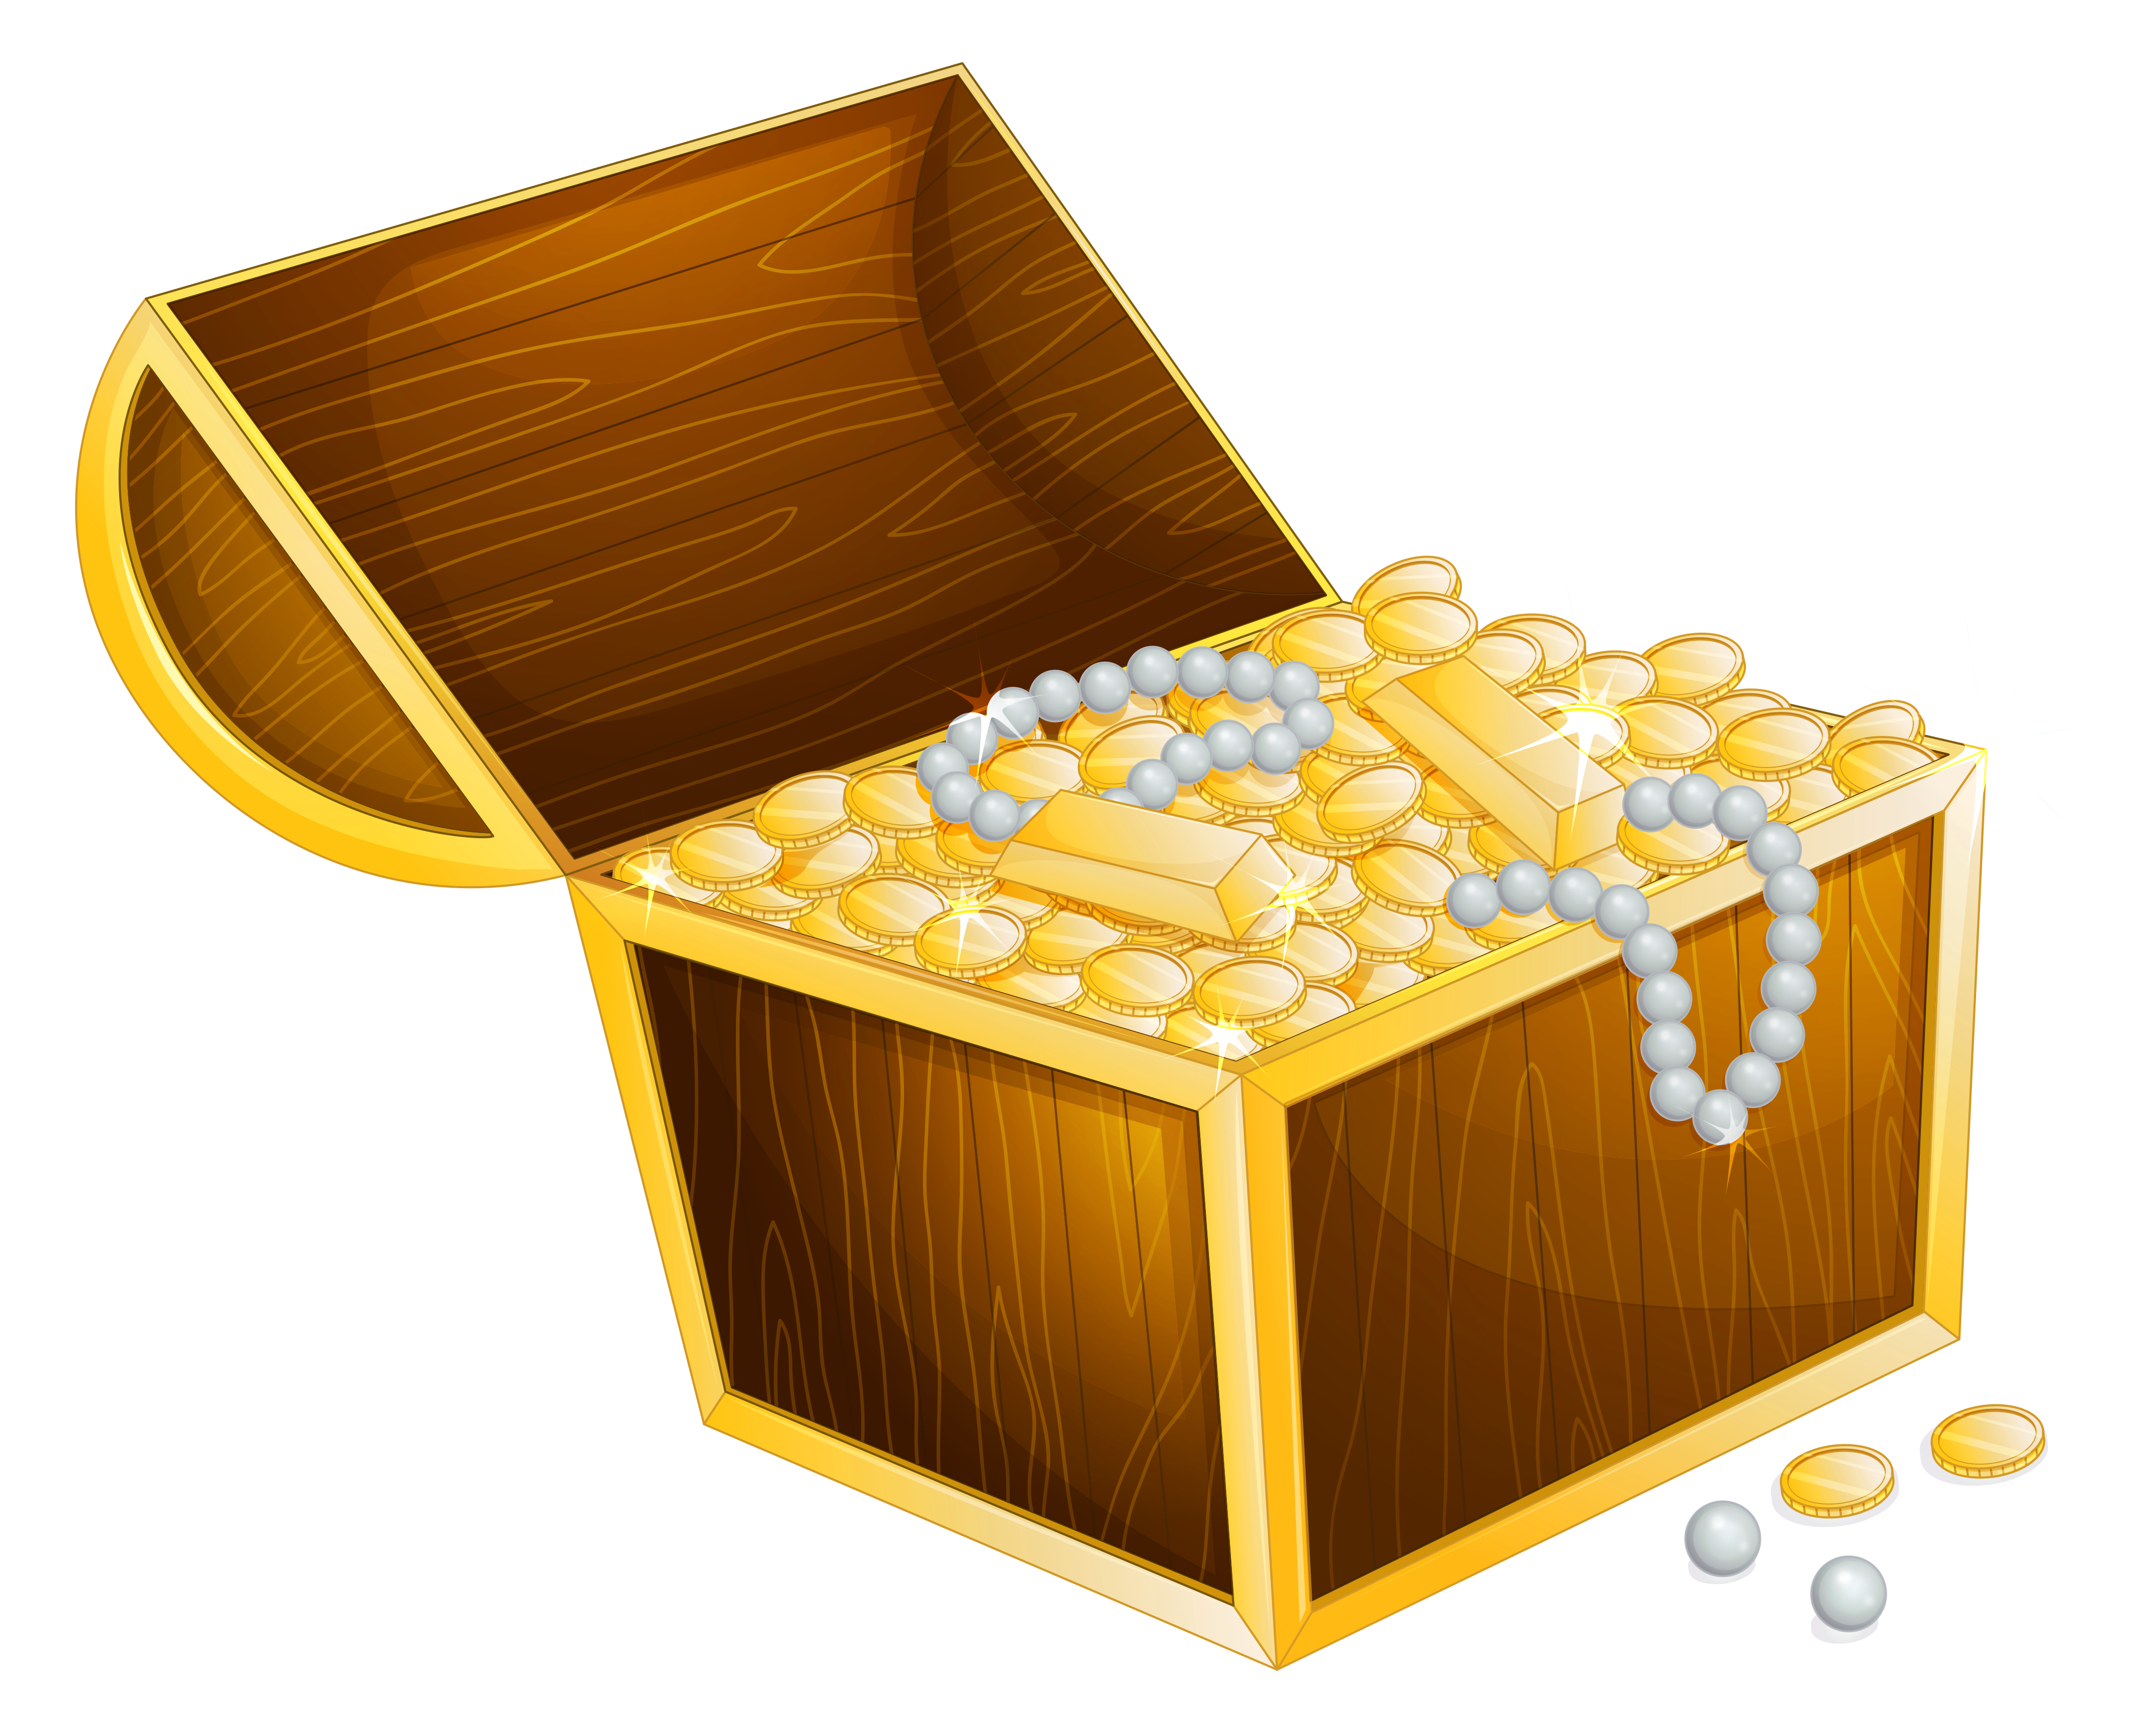 Treasure chest .png